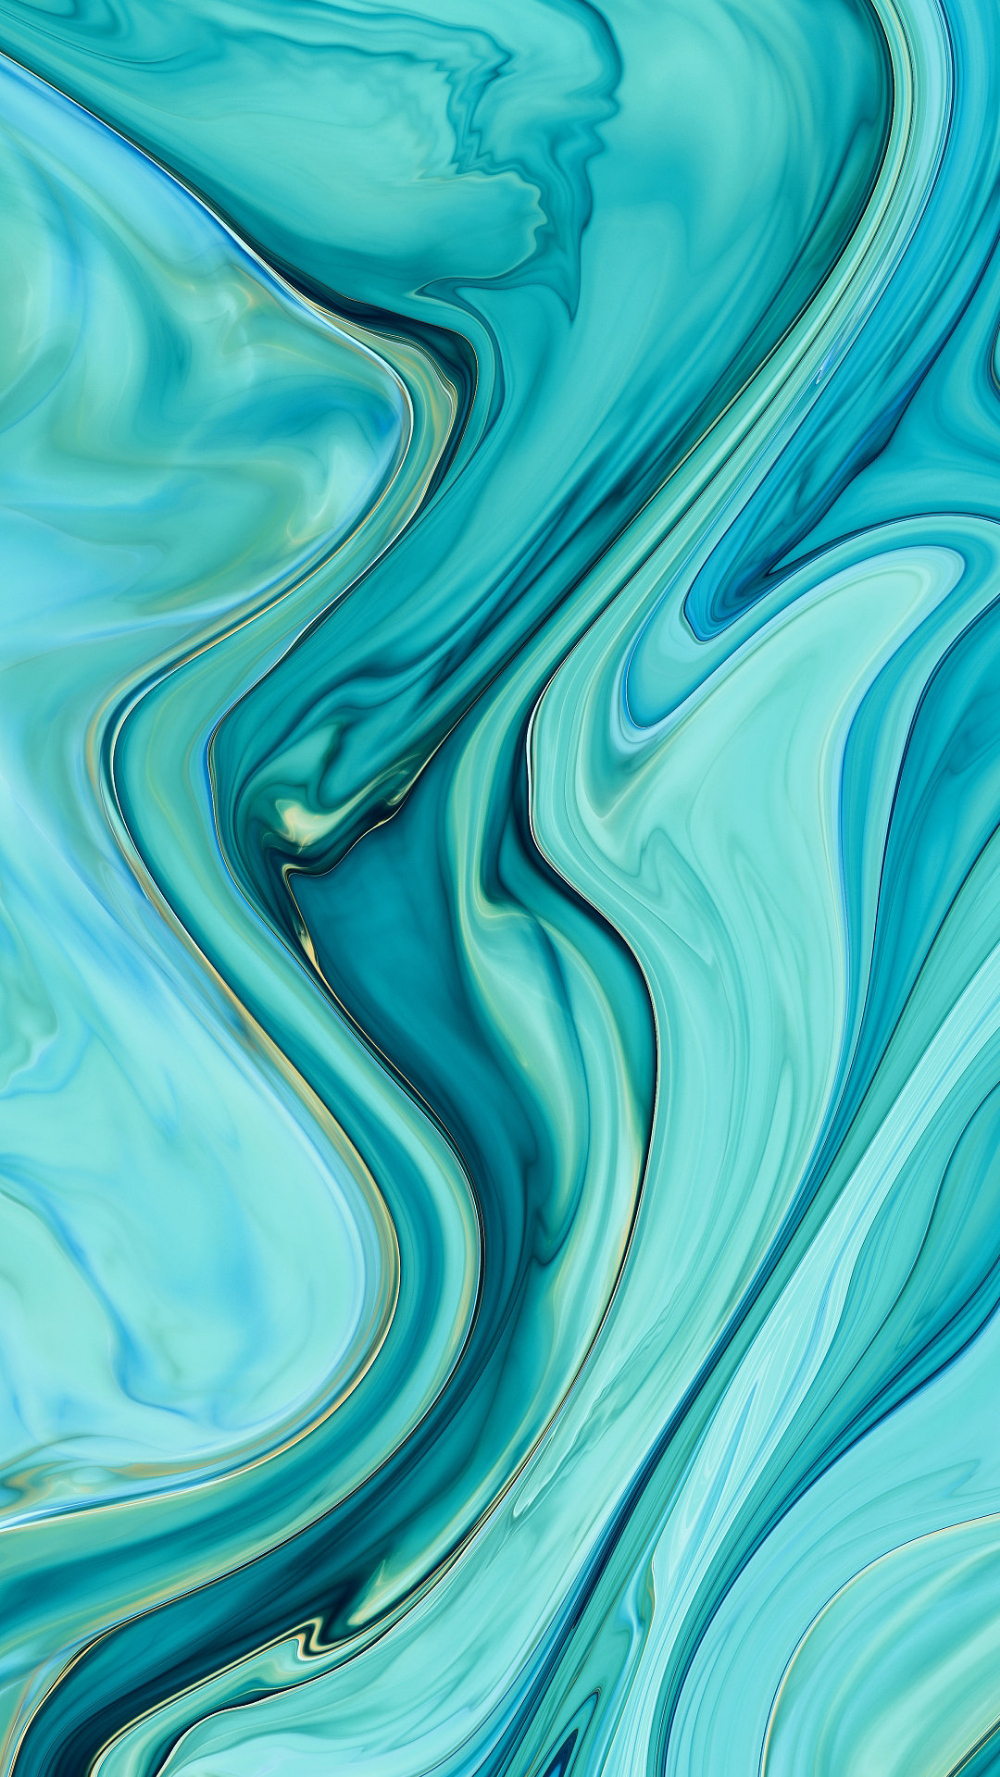 iPhone blue green winding gradient visual Abstract